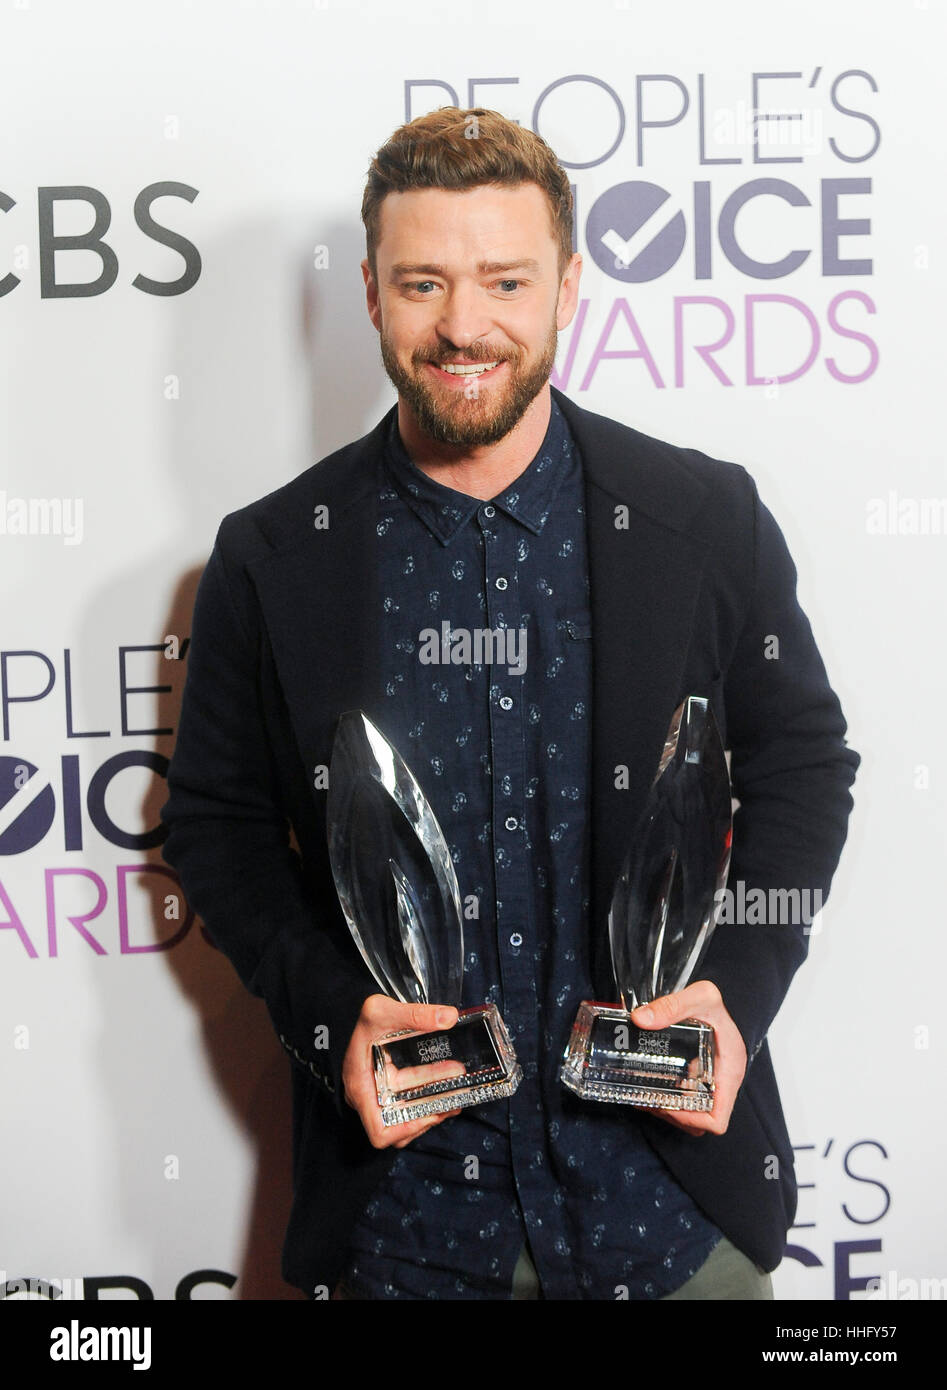 Los Angeles, USA. 18th Jan, 2017. Justin Timberlake poses with the awards for Favorite Male Singer and Favorite Stock Foto